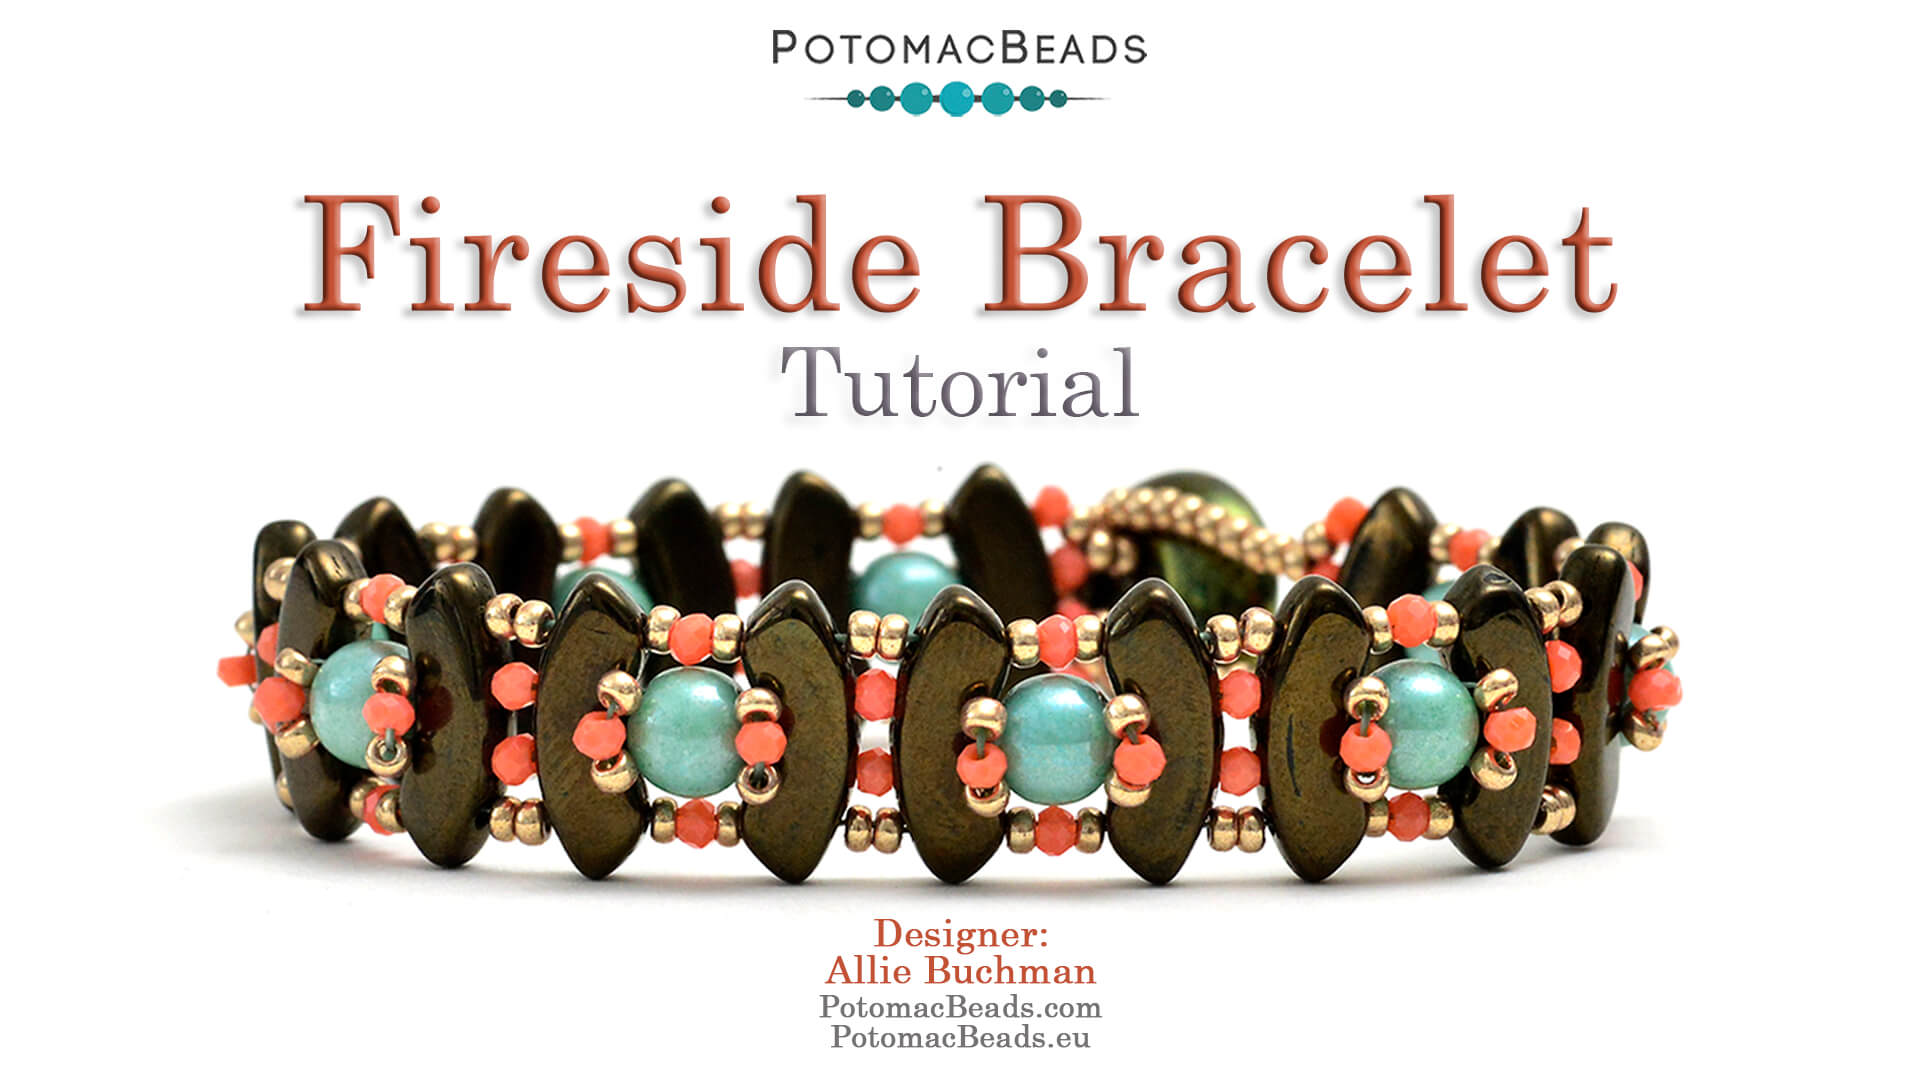 How to Bead / Videos Sorted by Beads / QuadBow & PieDuo Bead Videos / Fireside Bracelet Tutorial